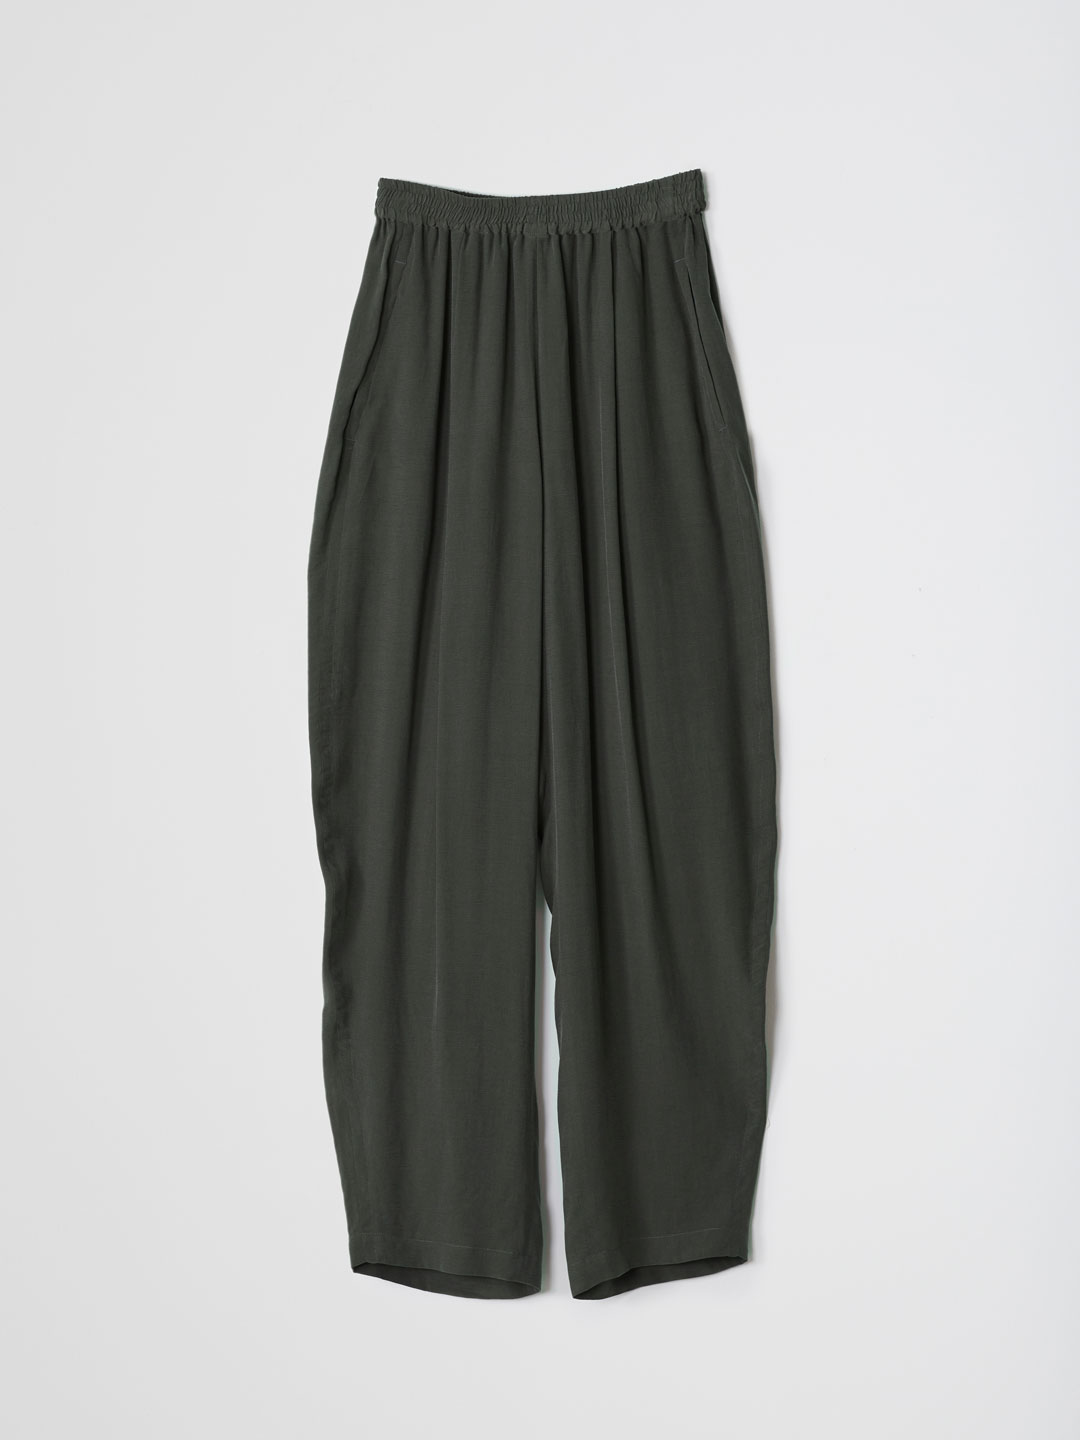 CU/RY Crecent Gathered Pants - Dark Green